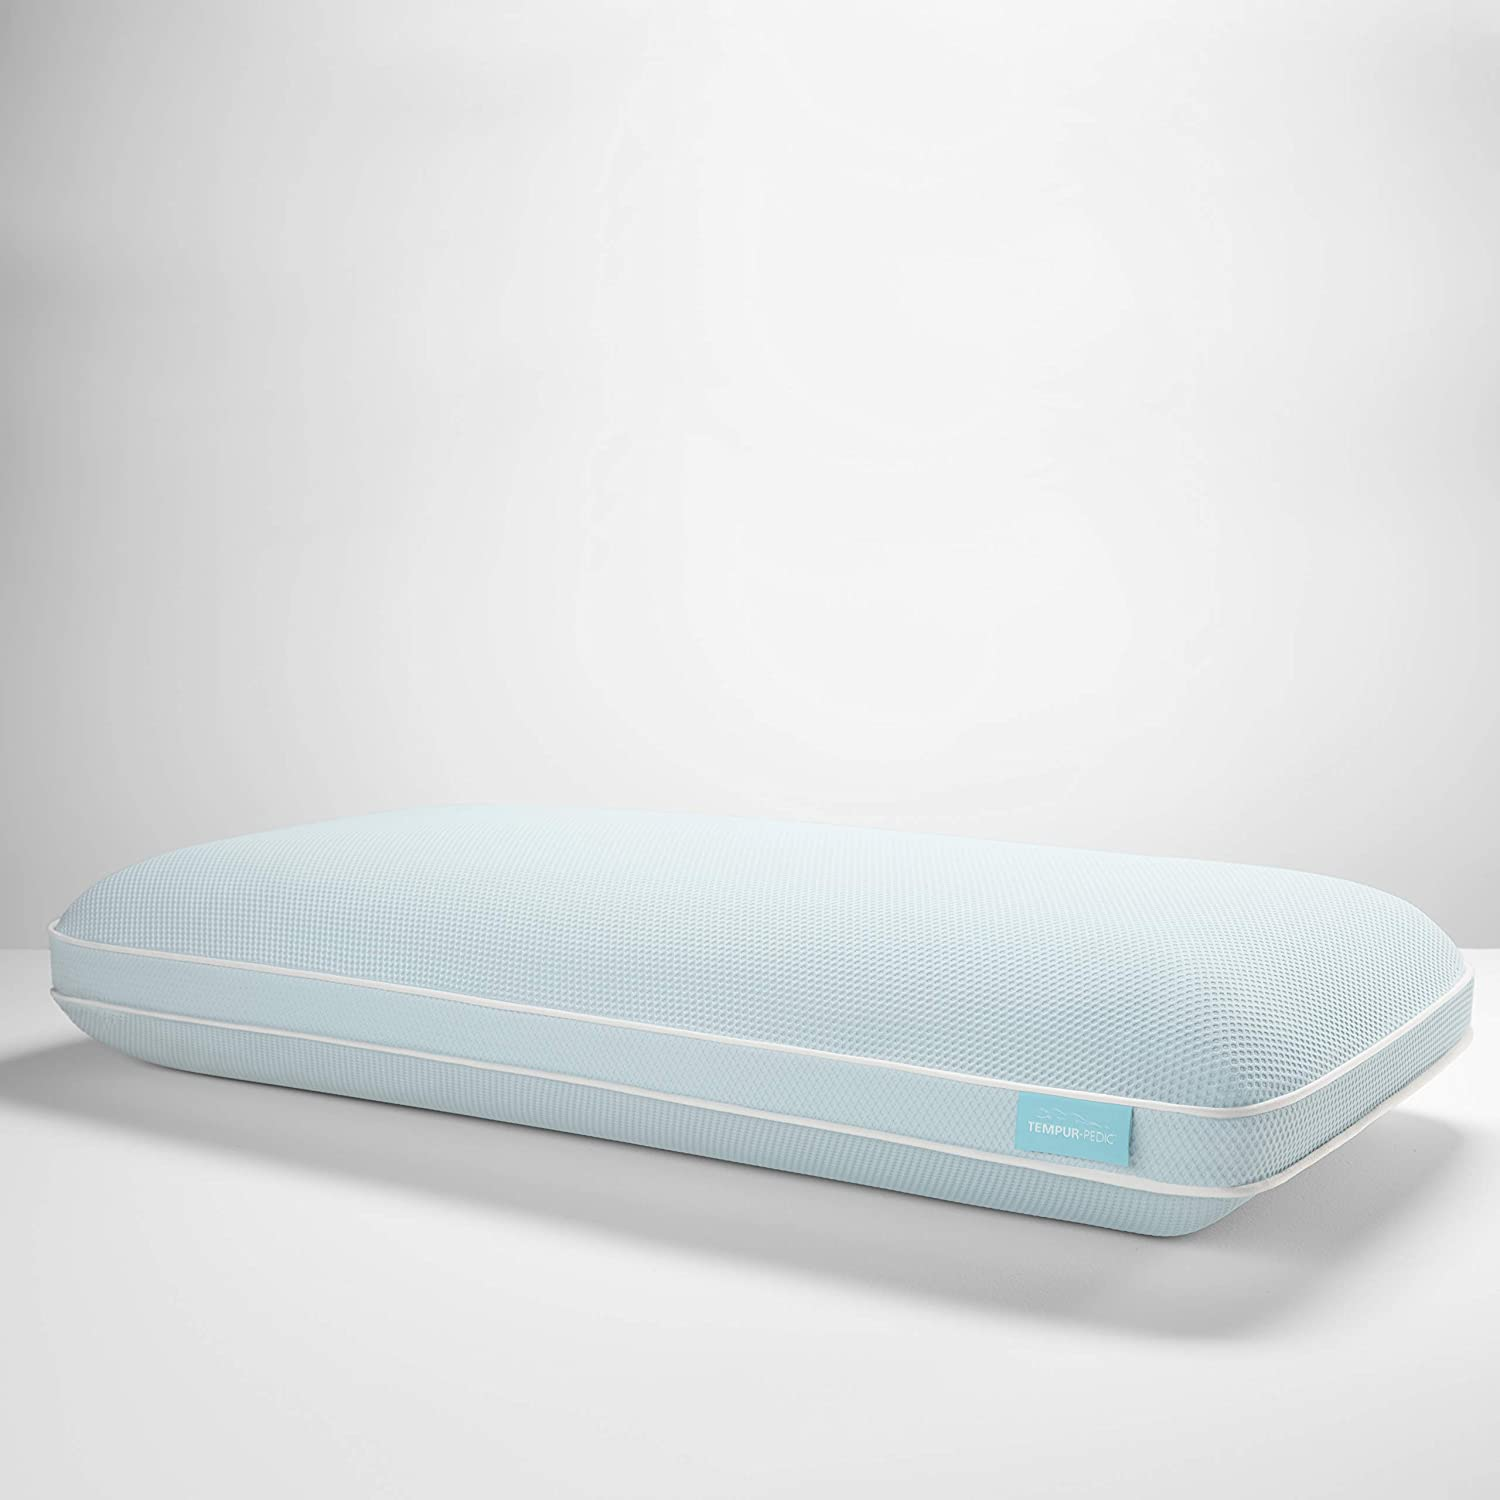 TEMPUR-ProForm + Cooling ProHi Pillow, Memory Foam, King, 5-Year Limited Warranty